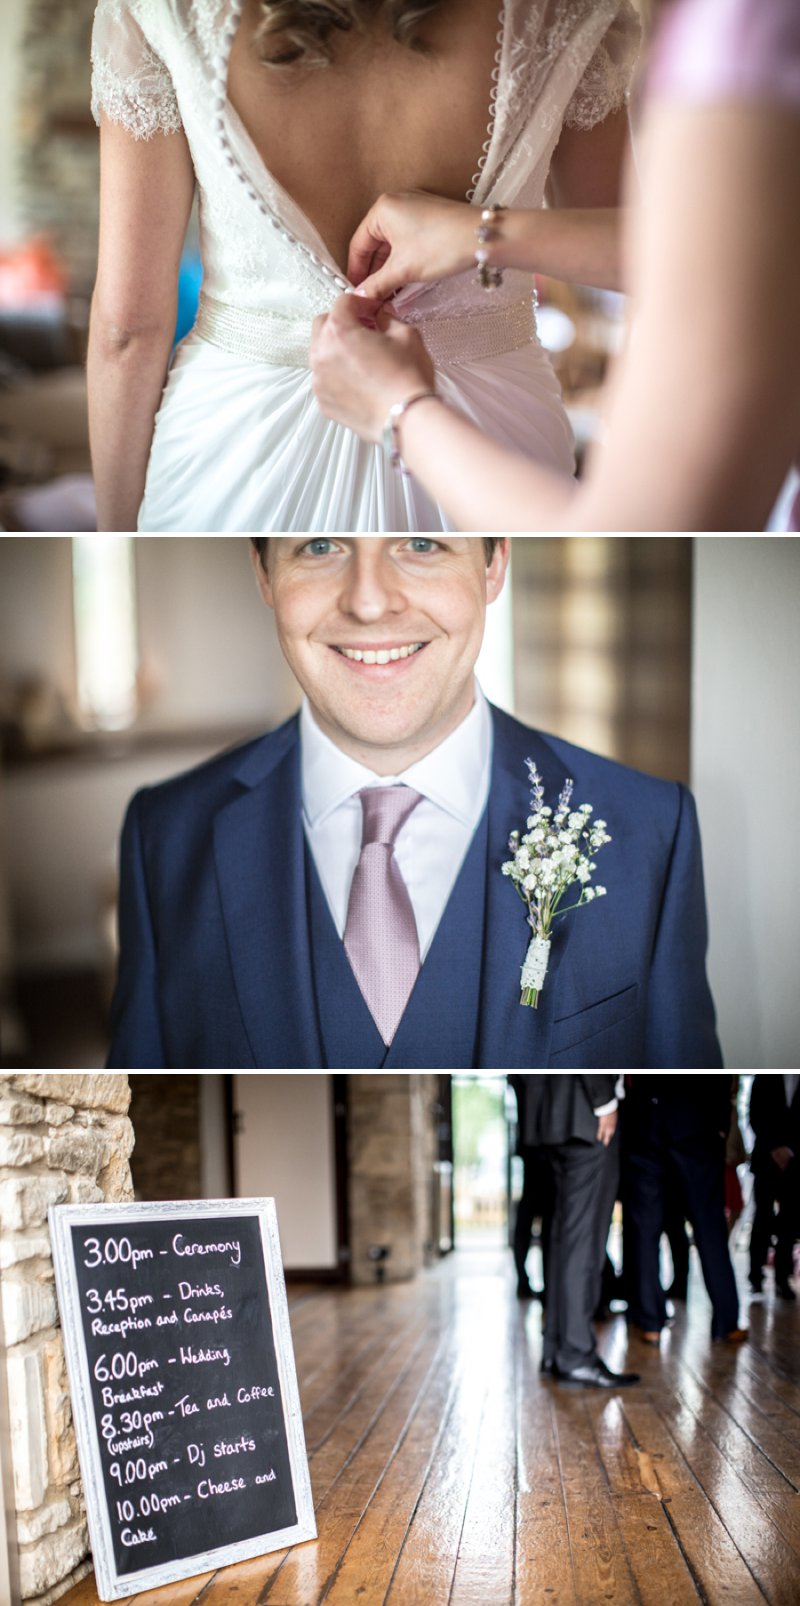 A Pretty Barn Wedding In The Cotswolds At The Great Tythe Barn With Bride In Pronovias And Groom In Reiss With Decor From The Vintage Hire And Images From Richard Jones Photography3